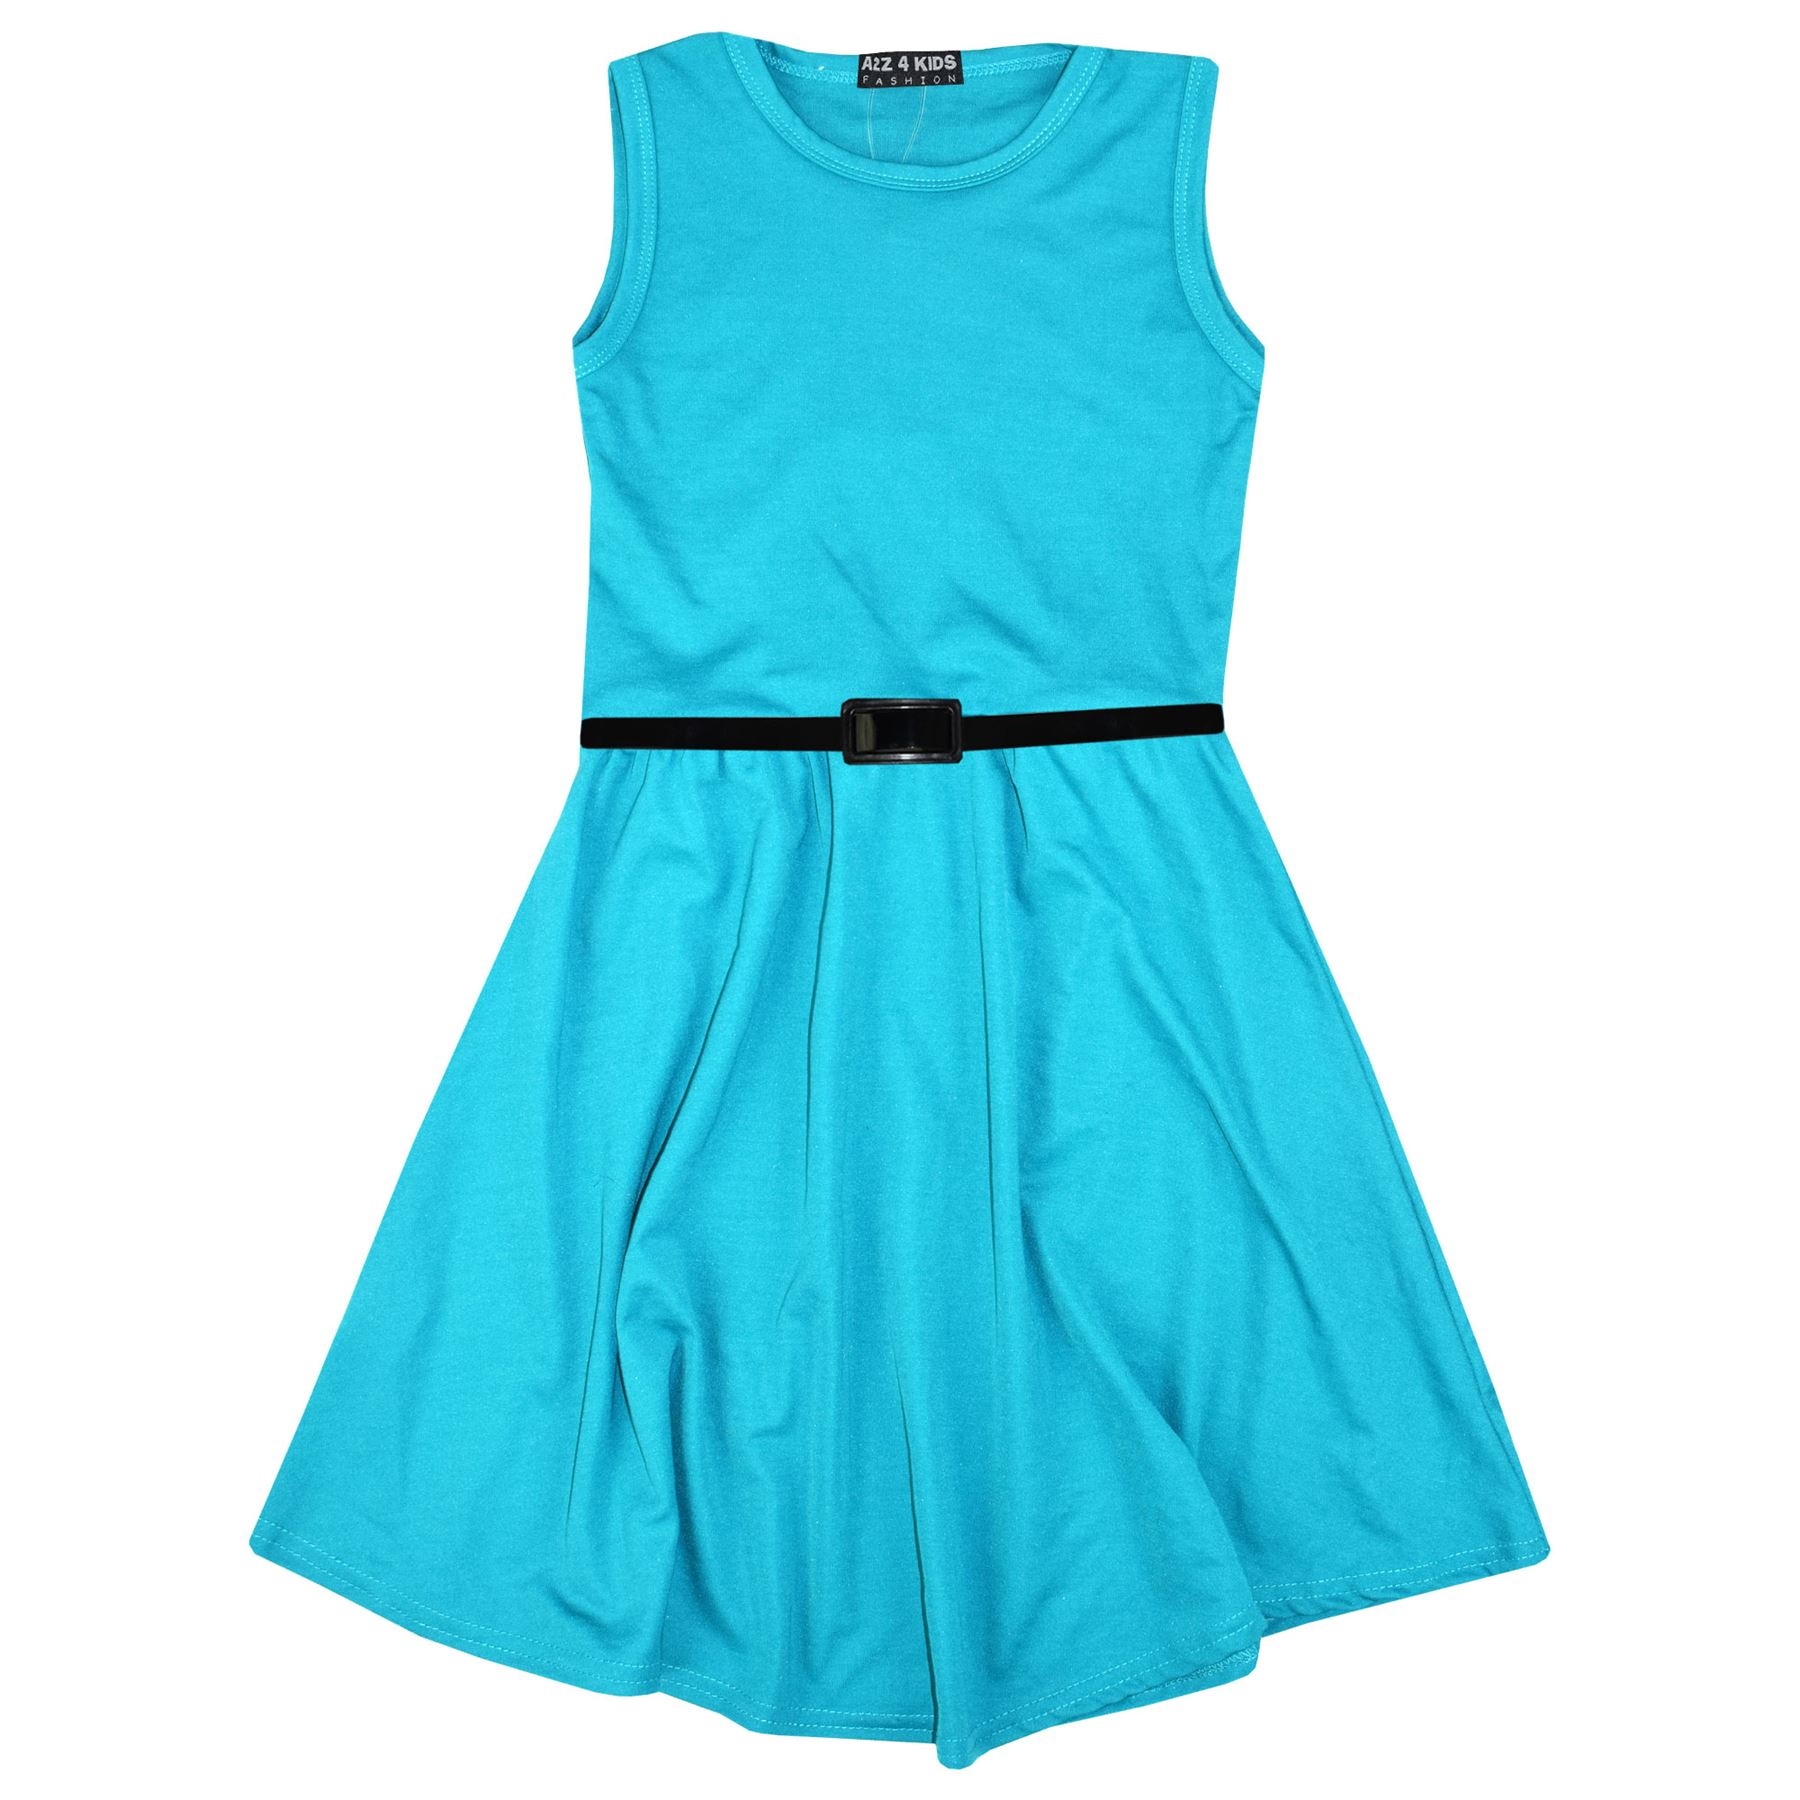 Girls-Skater-Dress-Kids-Party-Dresses-With-Free-Belt-5-6-7-8-9-10-11-12-13-Years thumbnail 77